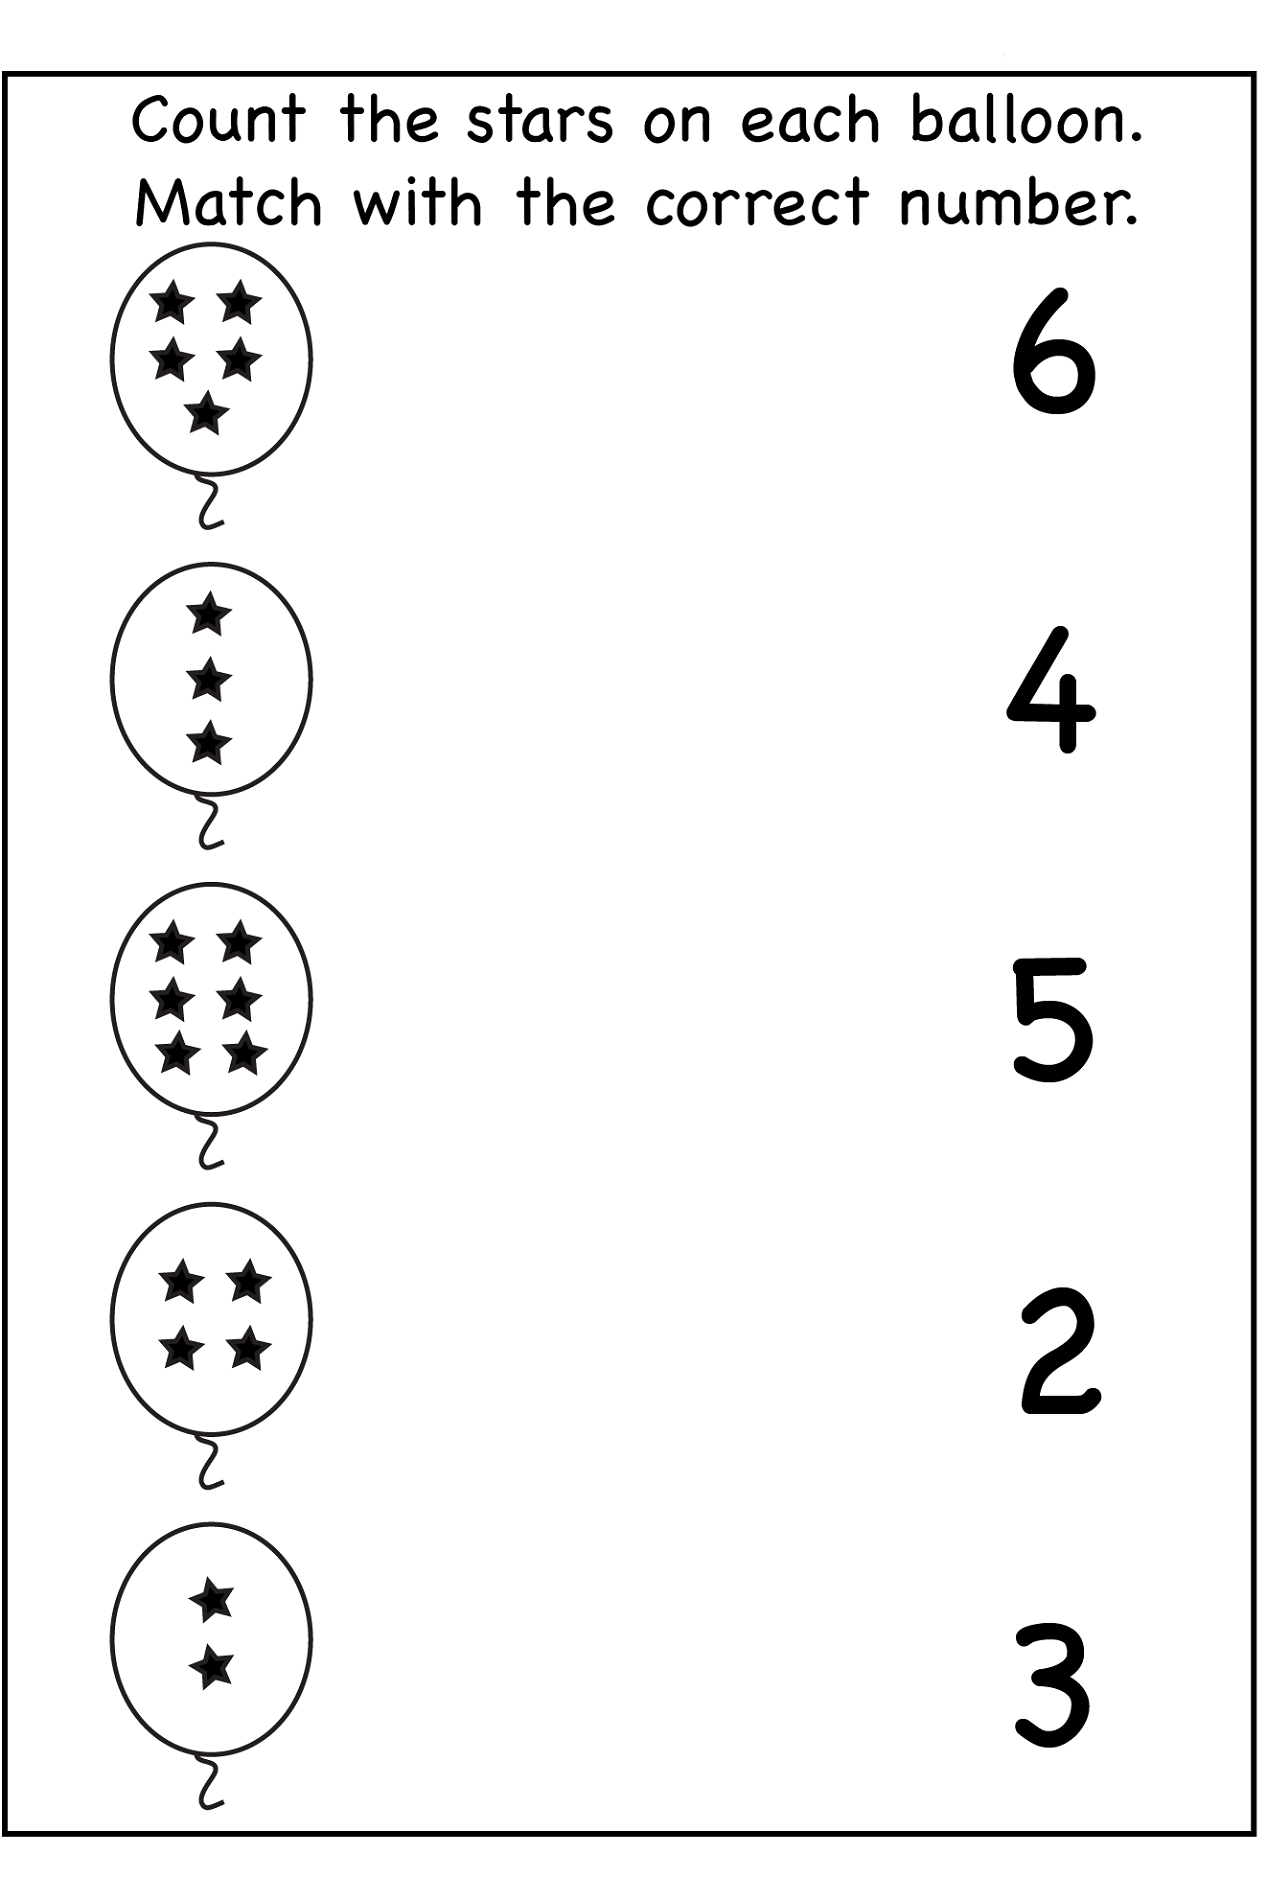 small resolution of pre-k worksheets - Yahoo Image Search Results   Preschool math worksheets